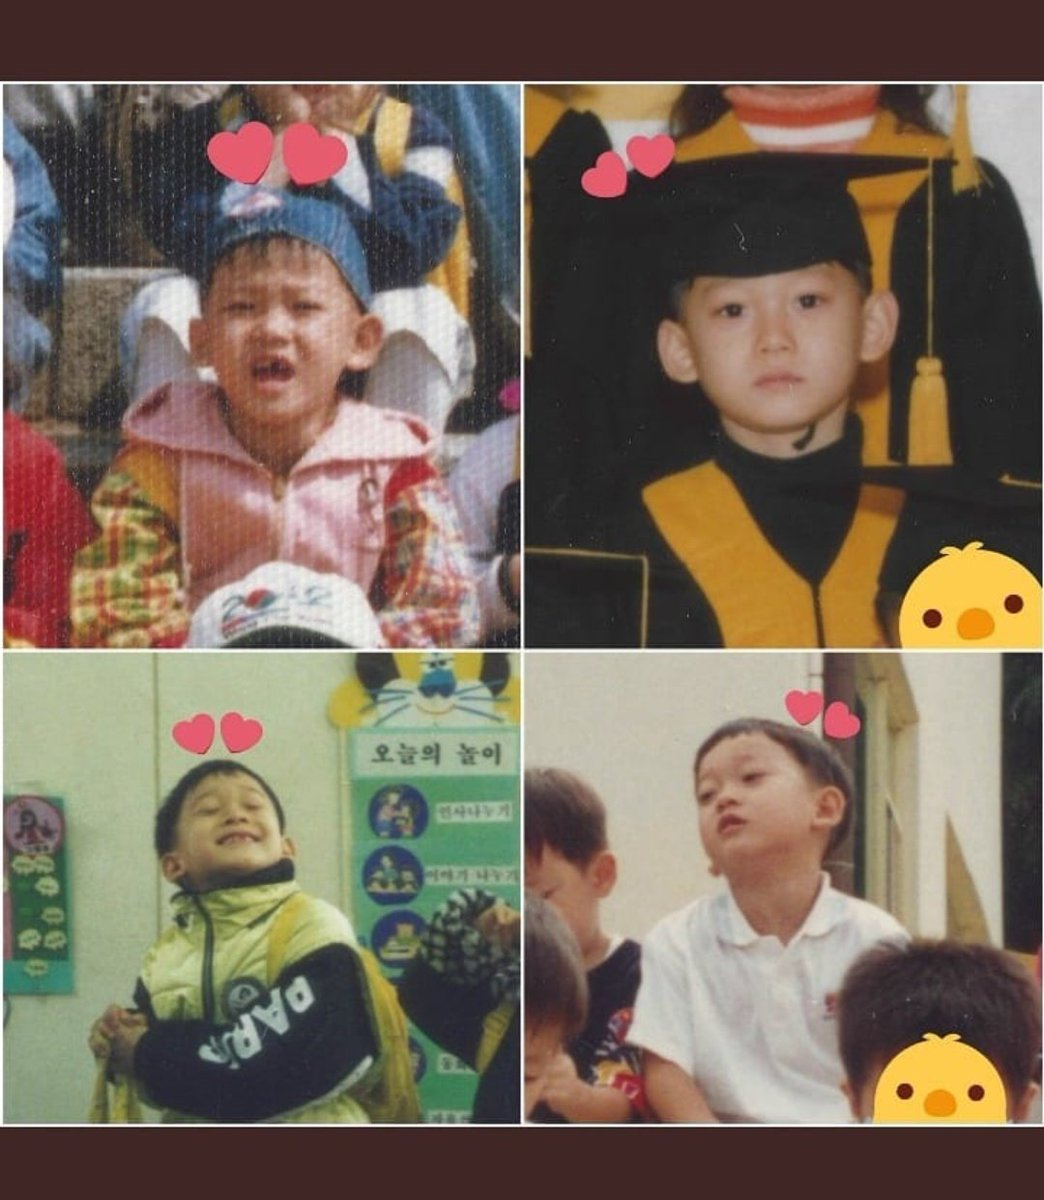 Happy birthday 첸 오빠  We love you, we support you Love you oppa!!!!!!!!!! #CHEN #KimJongdae #jongdaeappa #CHENDay #JONGDAE #WeAreOne #weareoneEXO #EXOLSTAYWITHCHEN https://t.co/OAIqPtH4vY